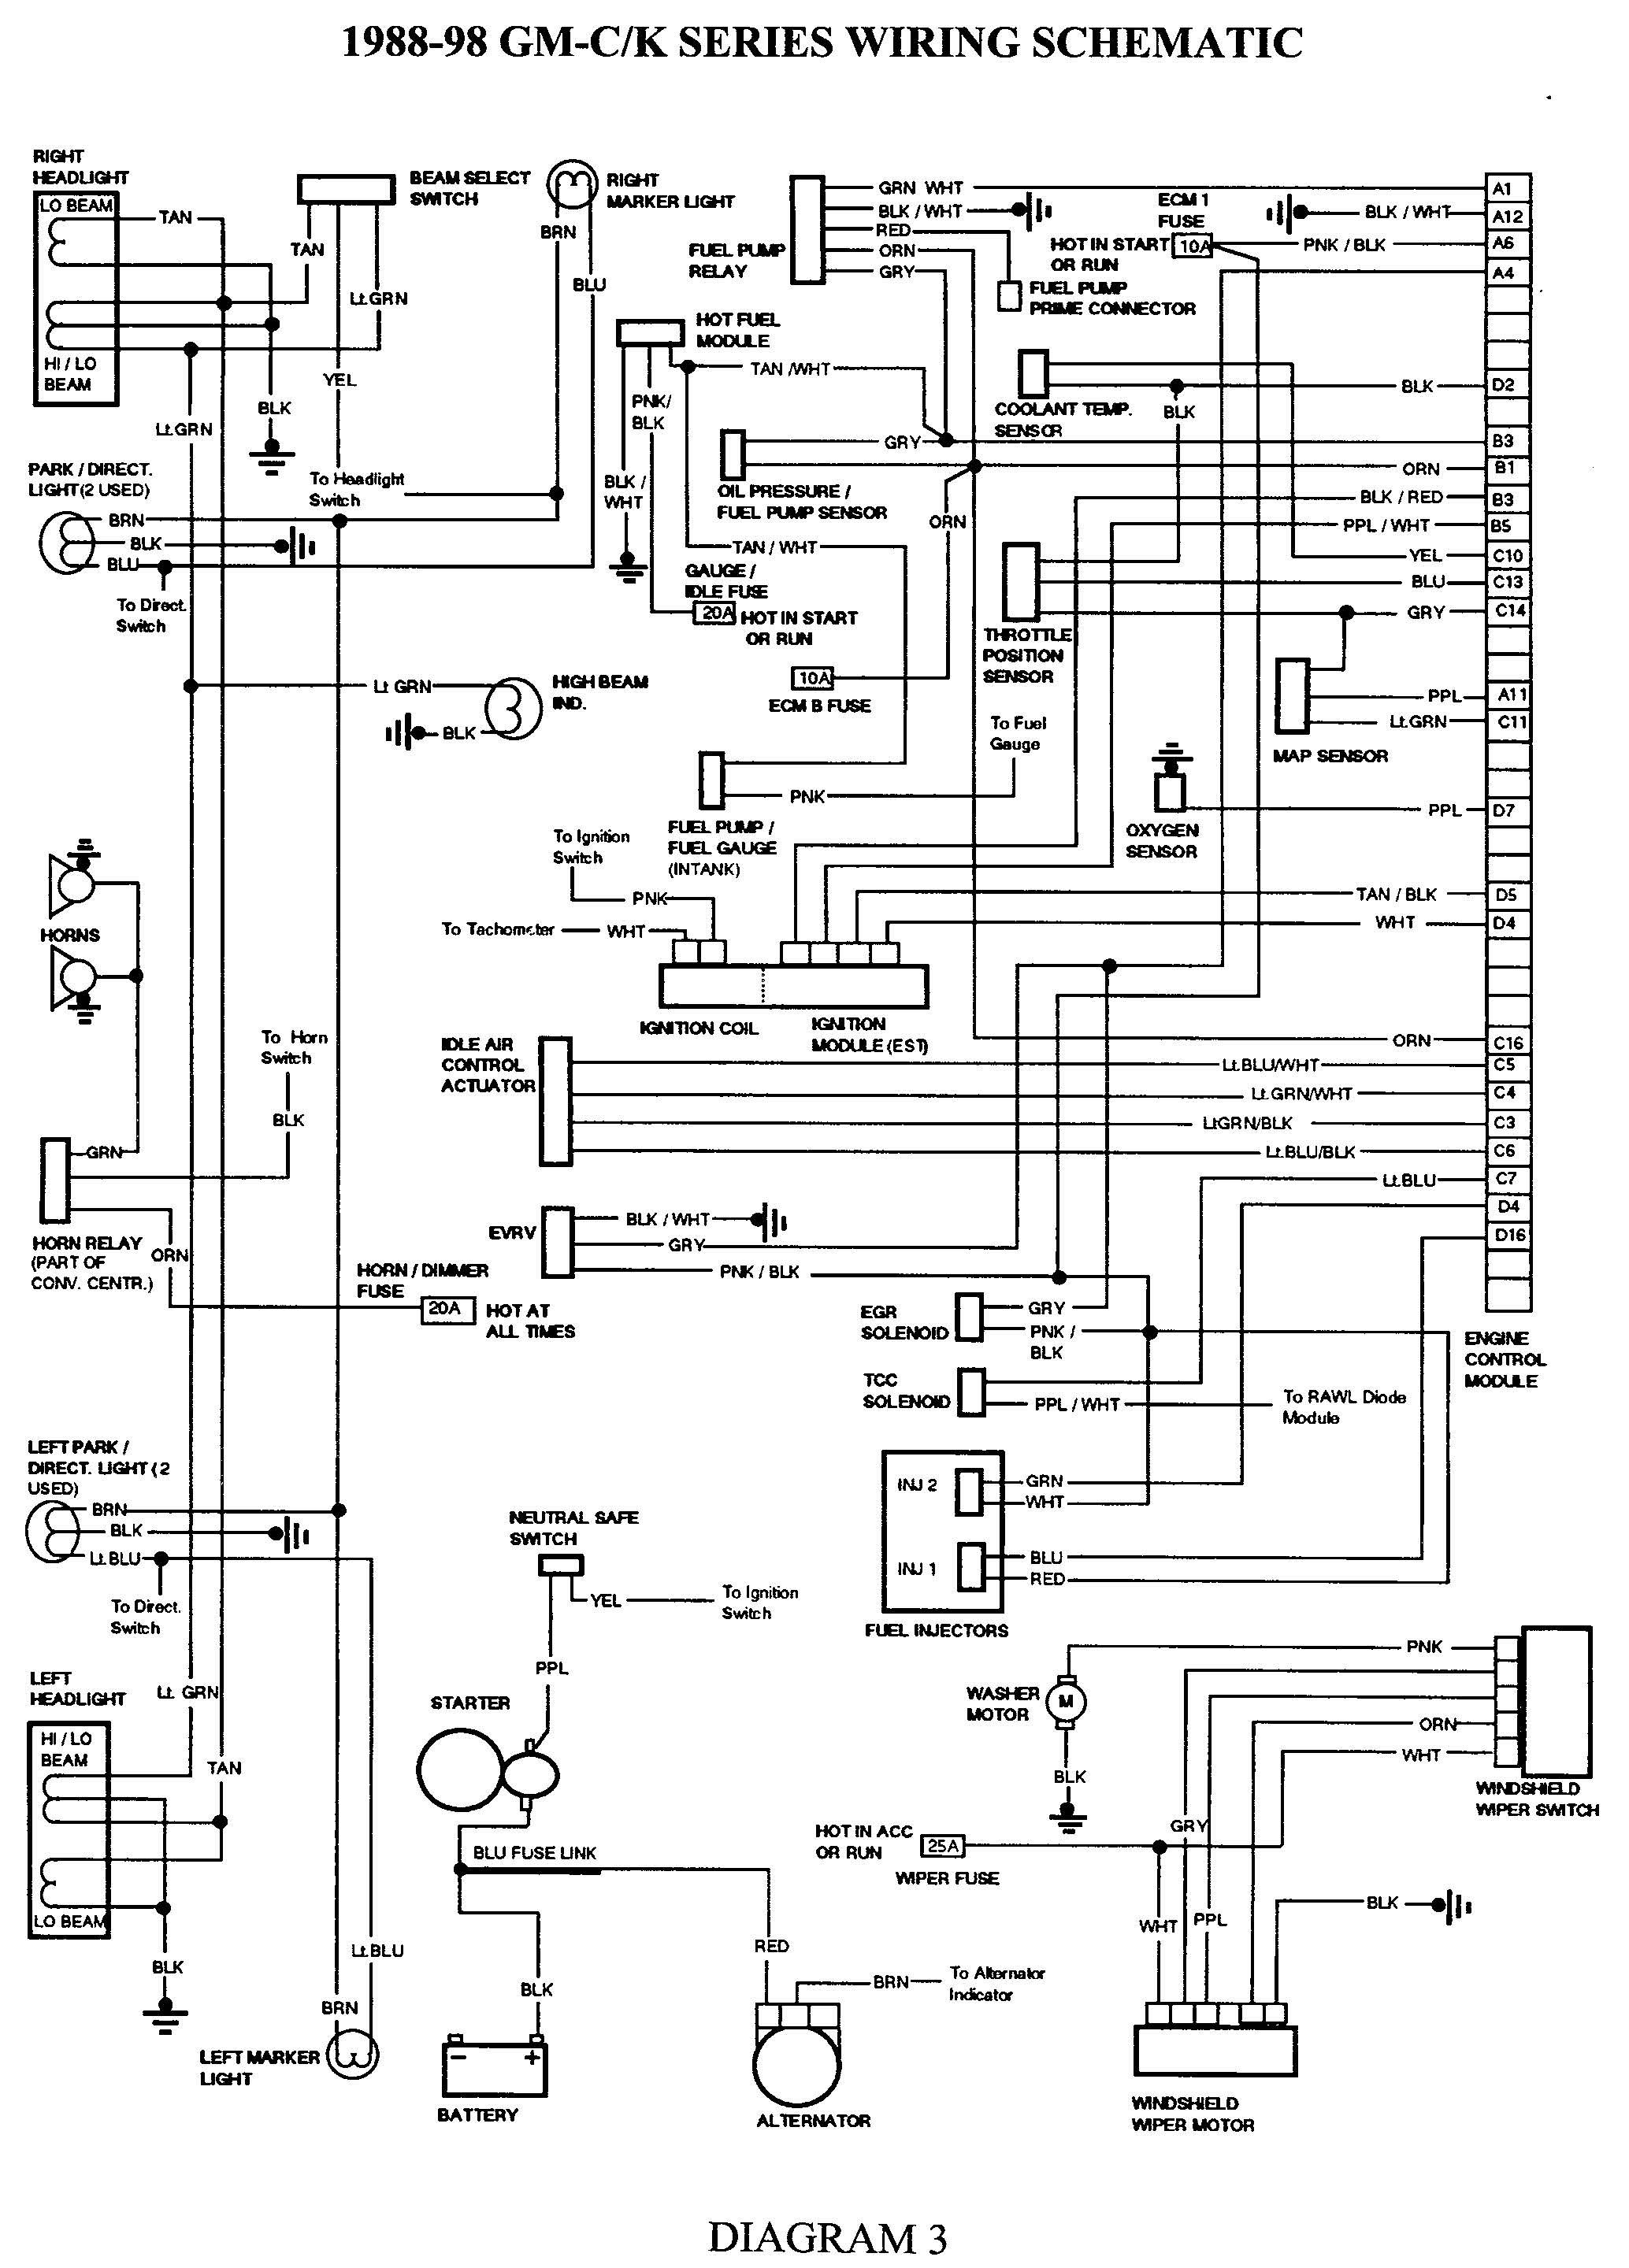 1986 Chevy C10 Engine Wiring Diagram Diy Enthusiasts Wiring Diagrams \u2022  Chevy Distributor Wiring Diagram 1986 Chevy Truck Ignition Wiring Diagram